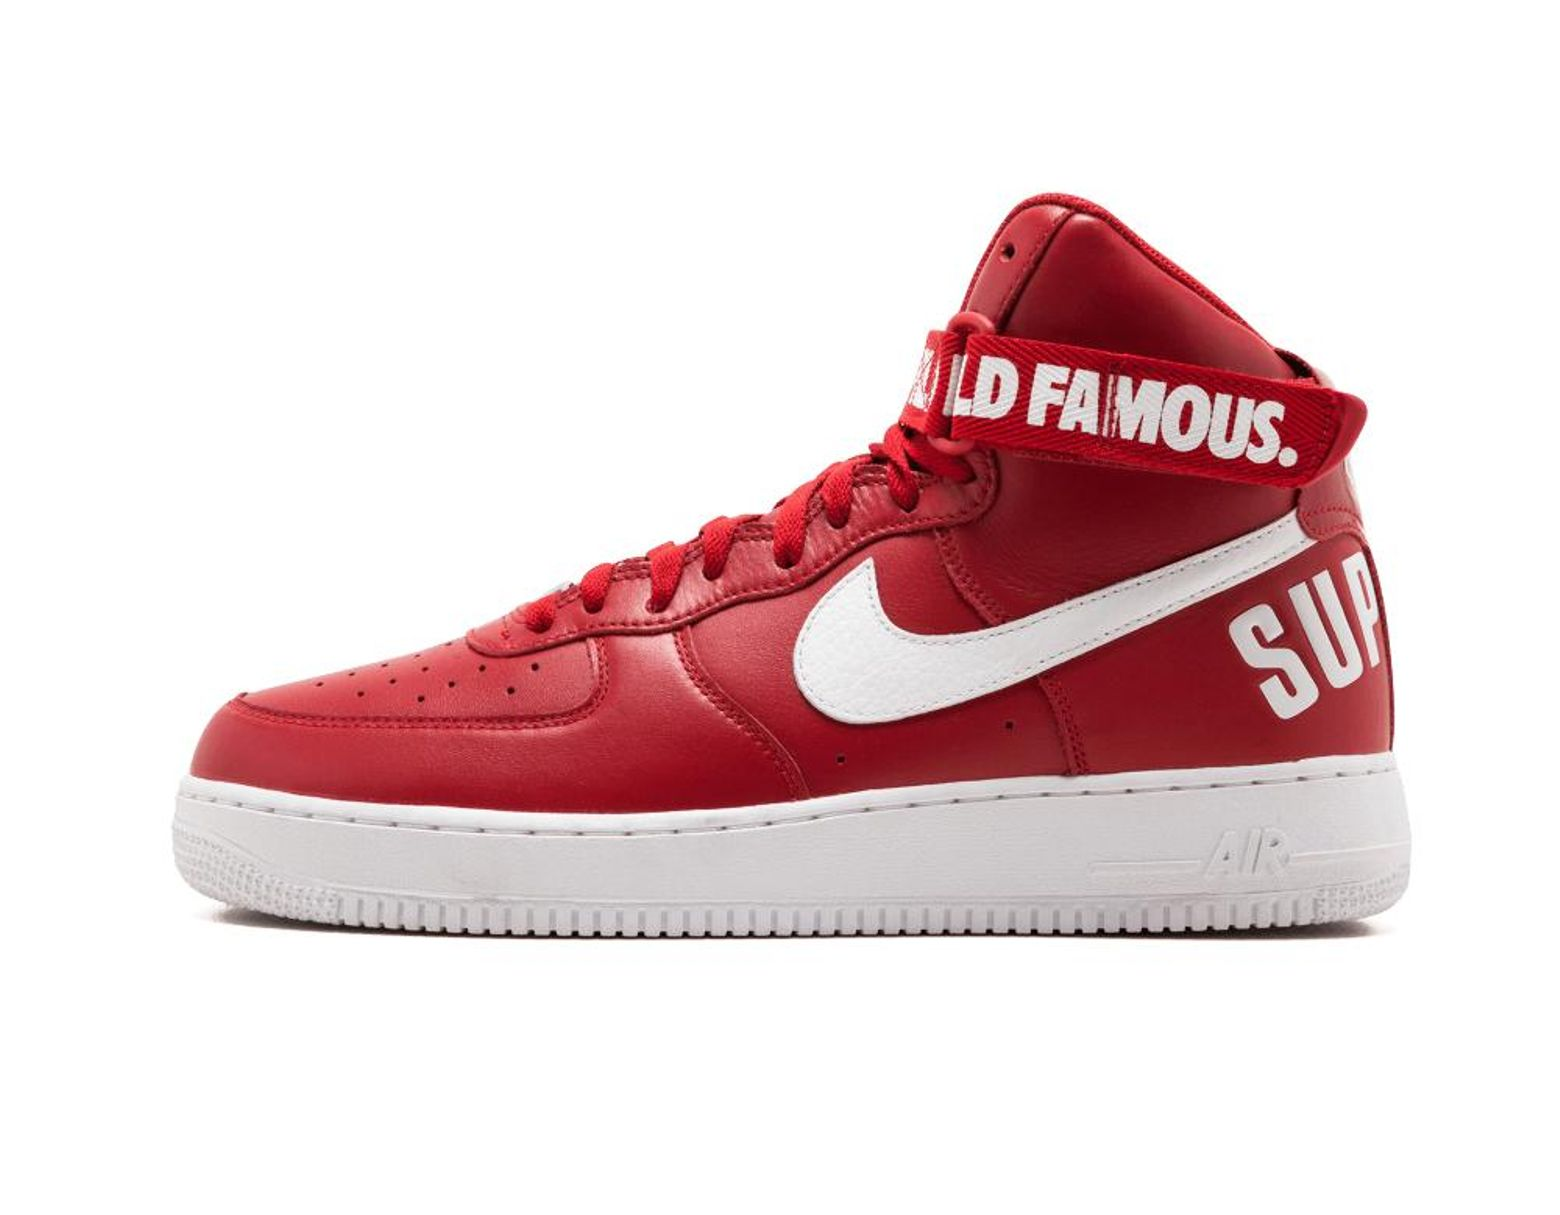 best service 0e103 01ad6 Nike Air Force 1 High Supreme Sp - Size 9.5 in Red for Men - Save 10% - Lyst